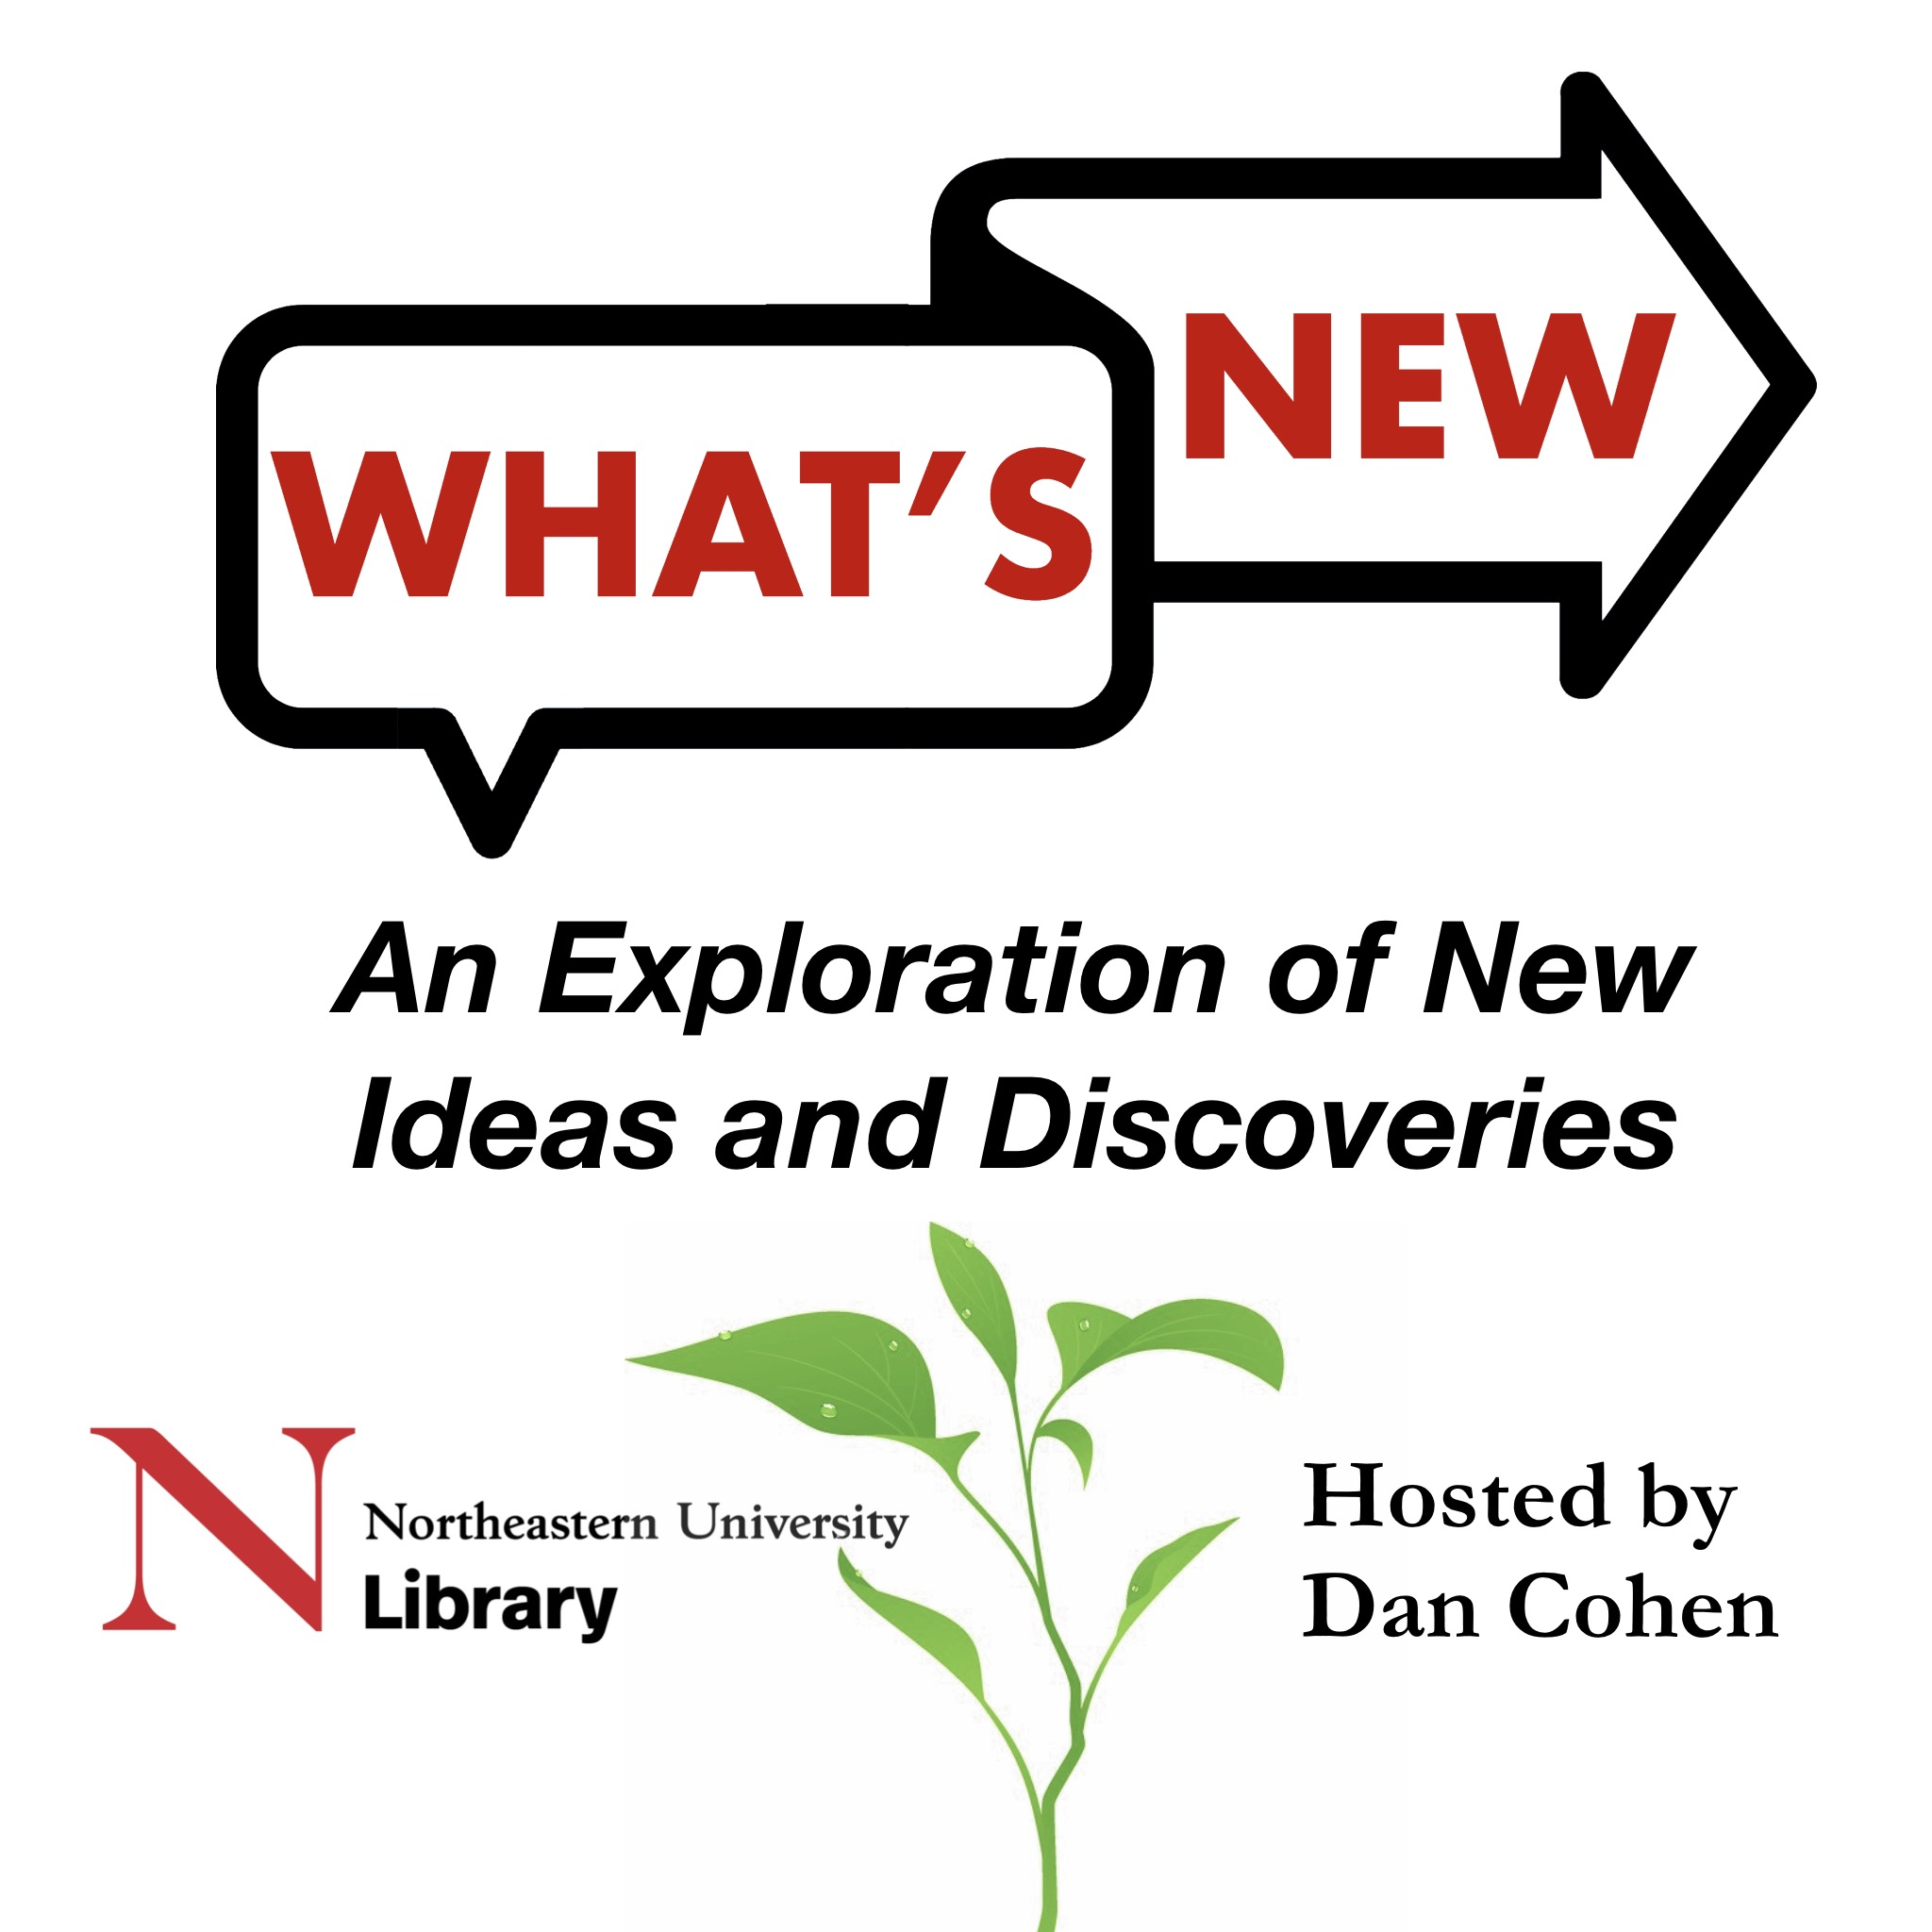 What's New | An Exploration of New Ideas and Discoveries